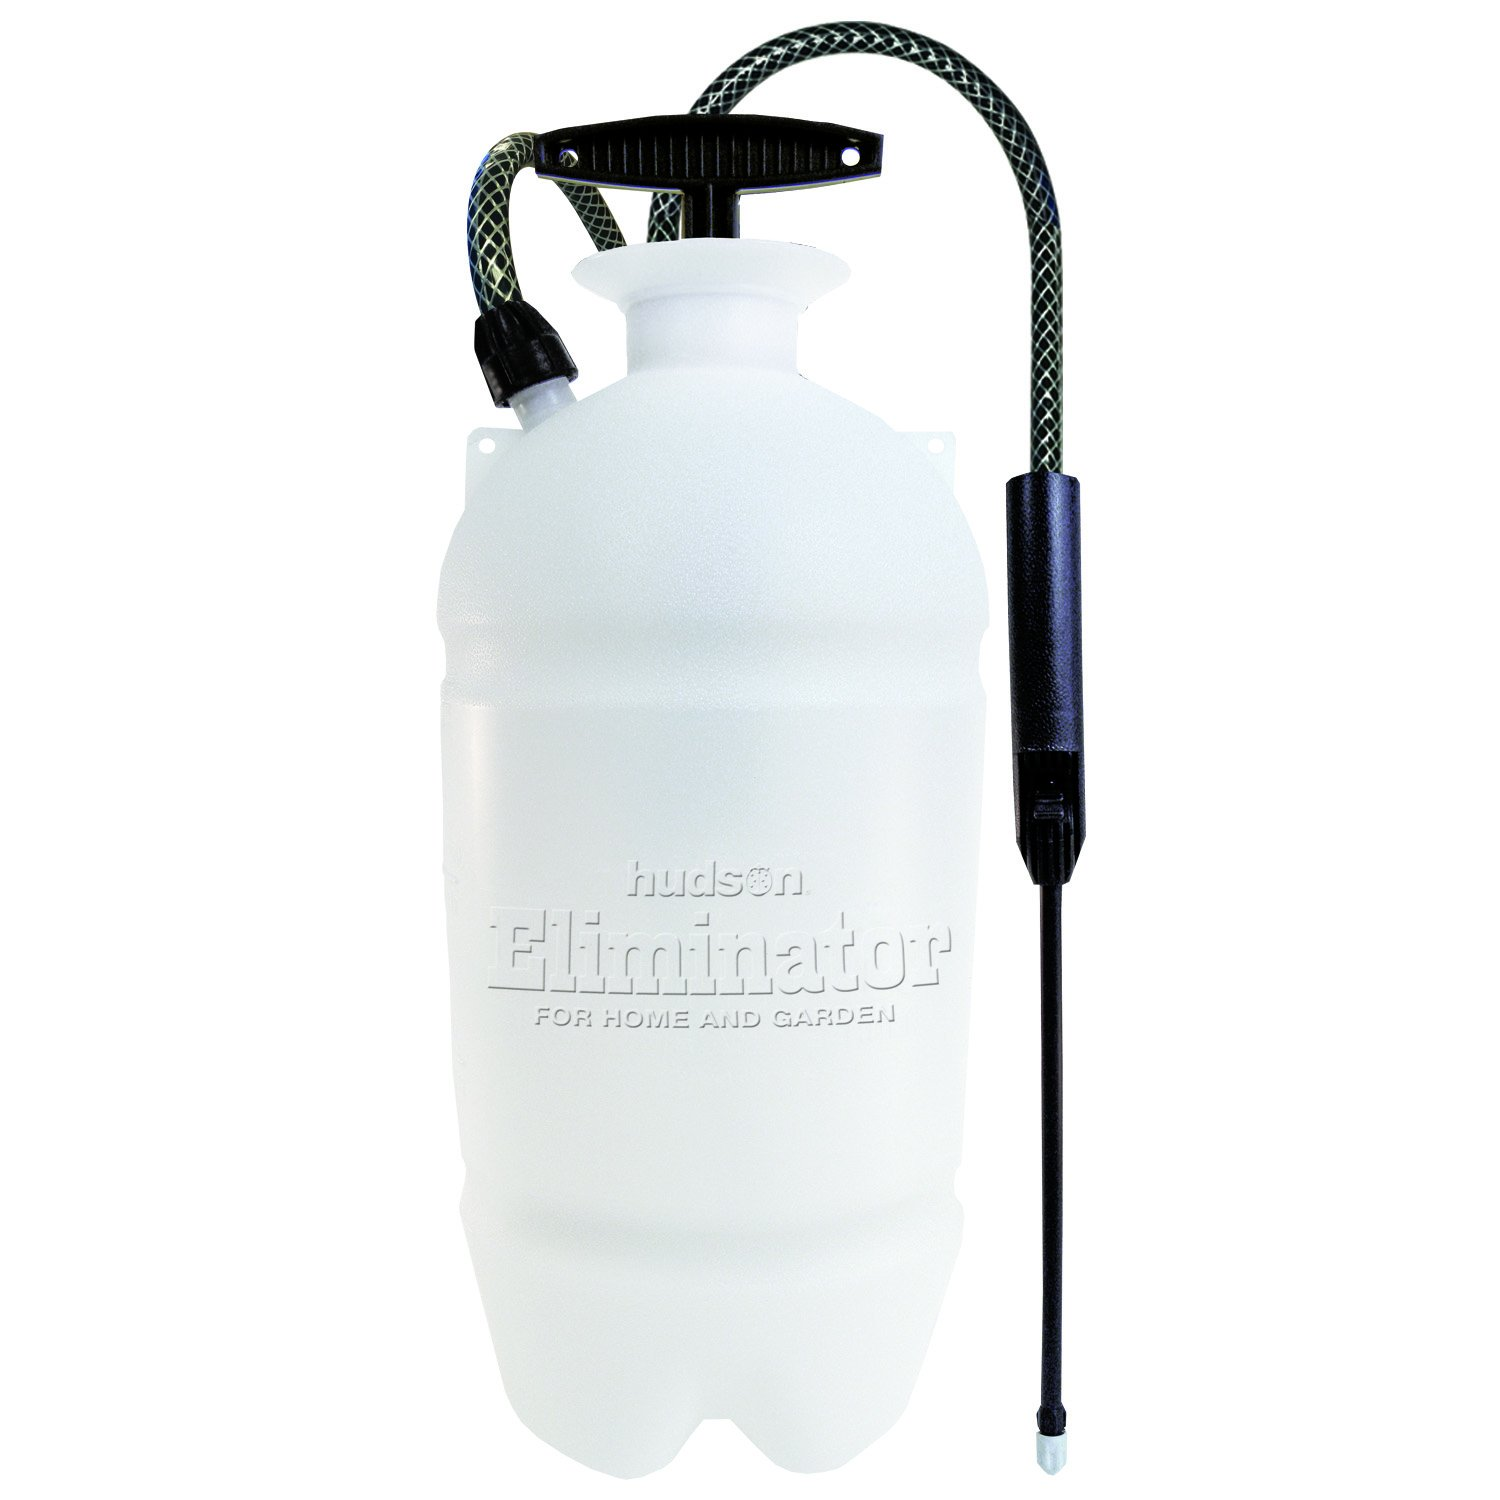 Hudson 60152 Weed'N Bug Eliminator 2 Gallon Sprayer